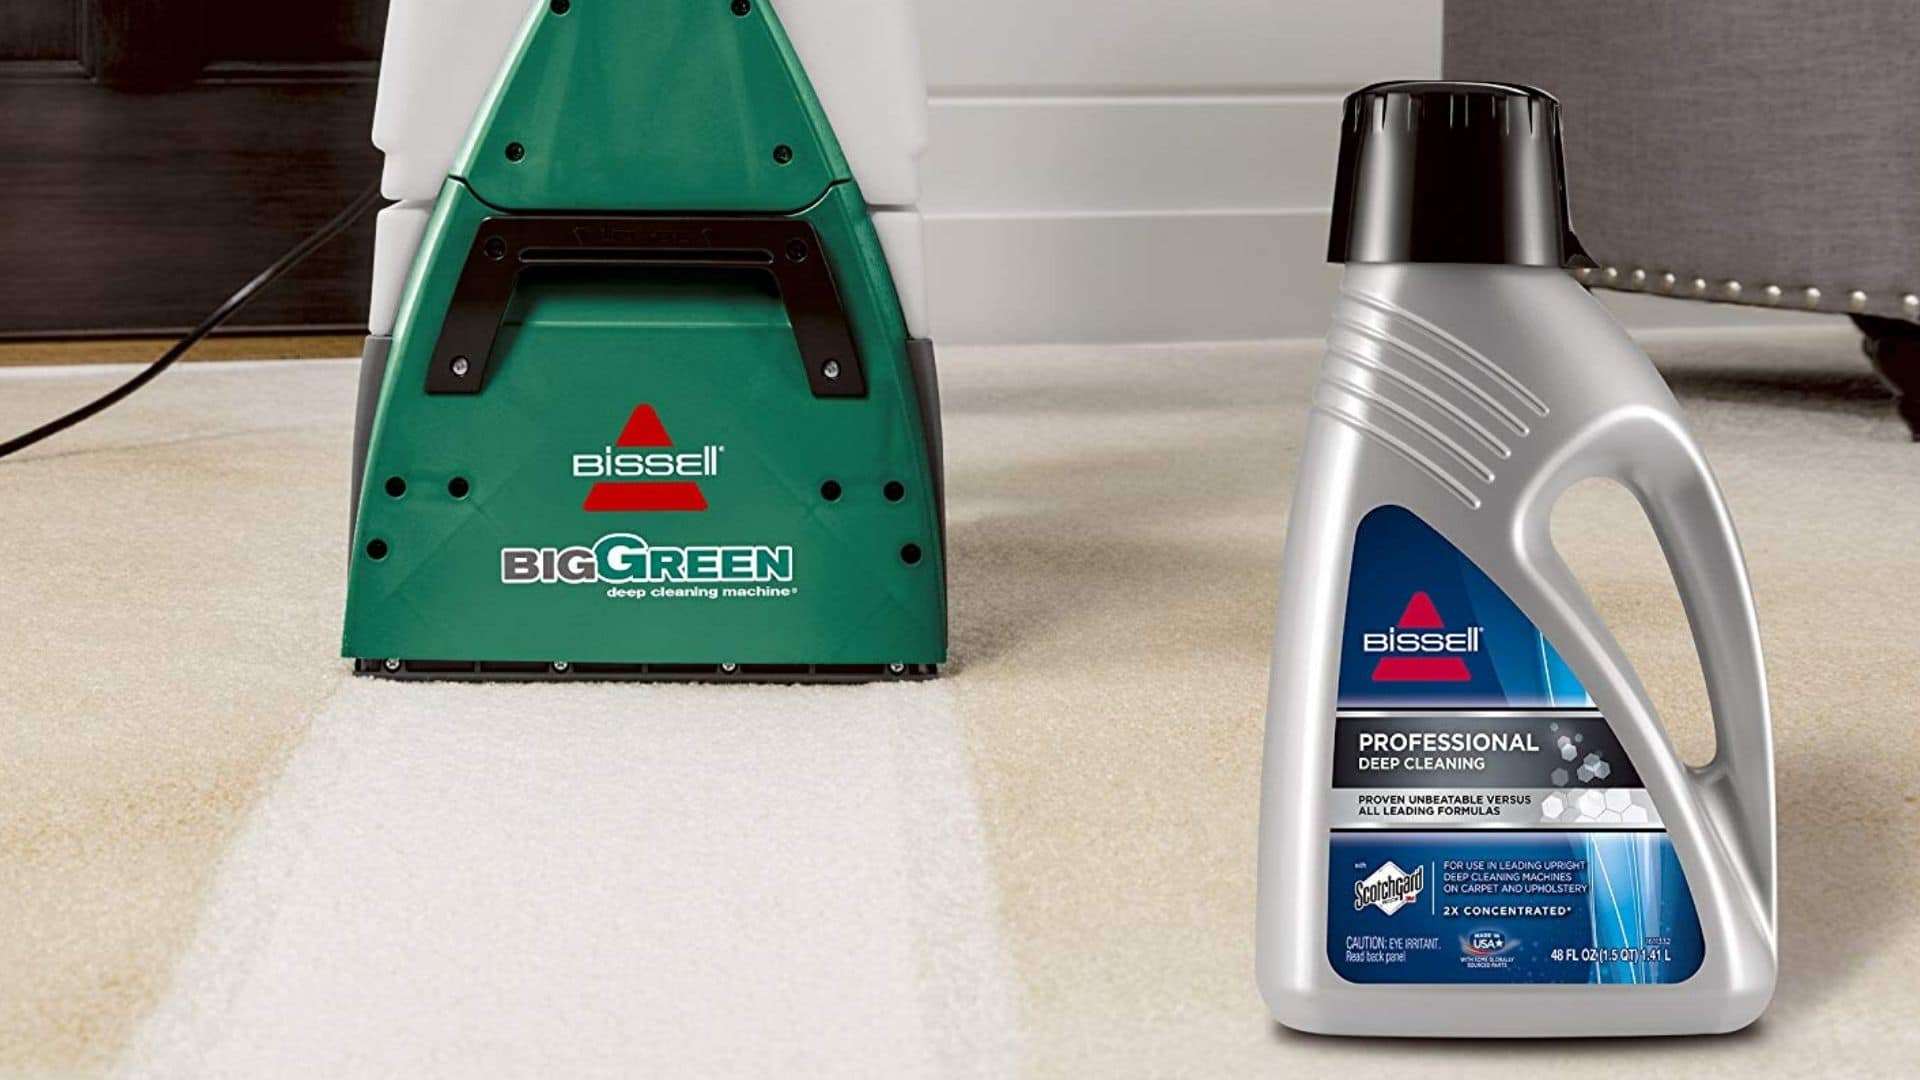 Bissell Big Green 86T3 Professional Carpet Cleaner beside cleaning solution